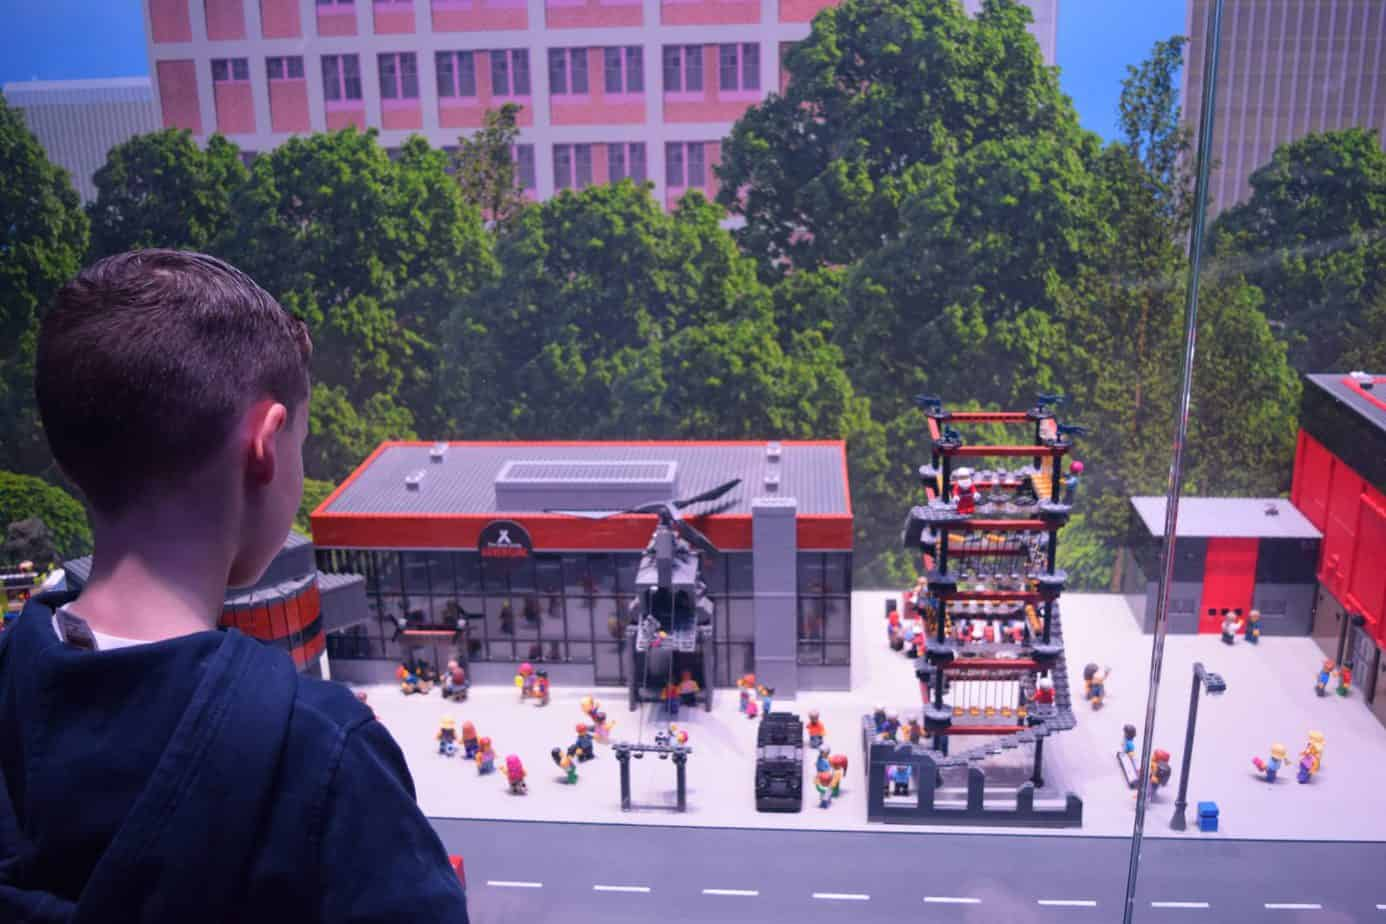 NEC and Bear Grylls adventure made out of Lego and Legoland Discovery Centre Birmingham